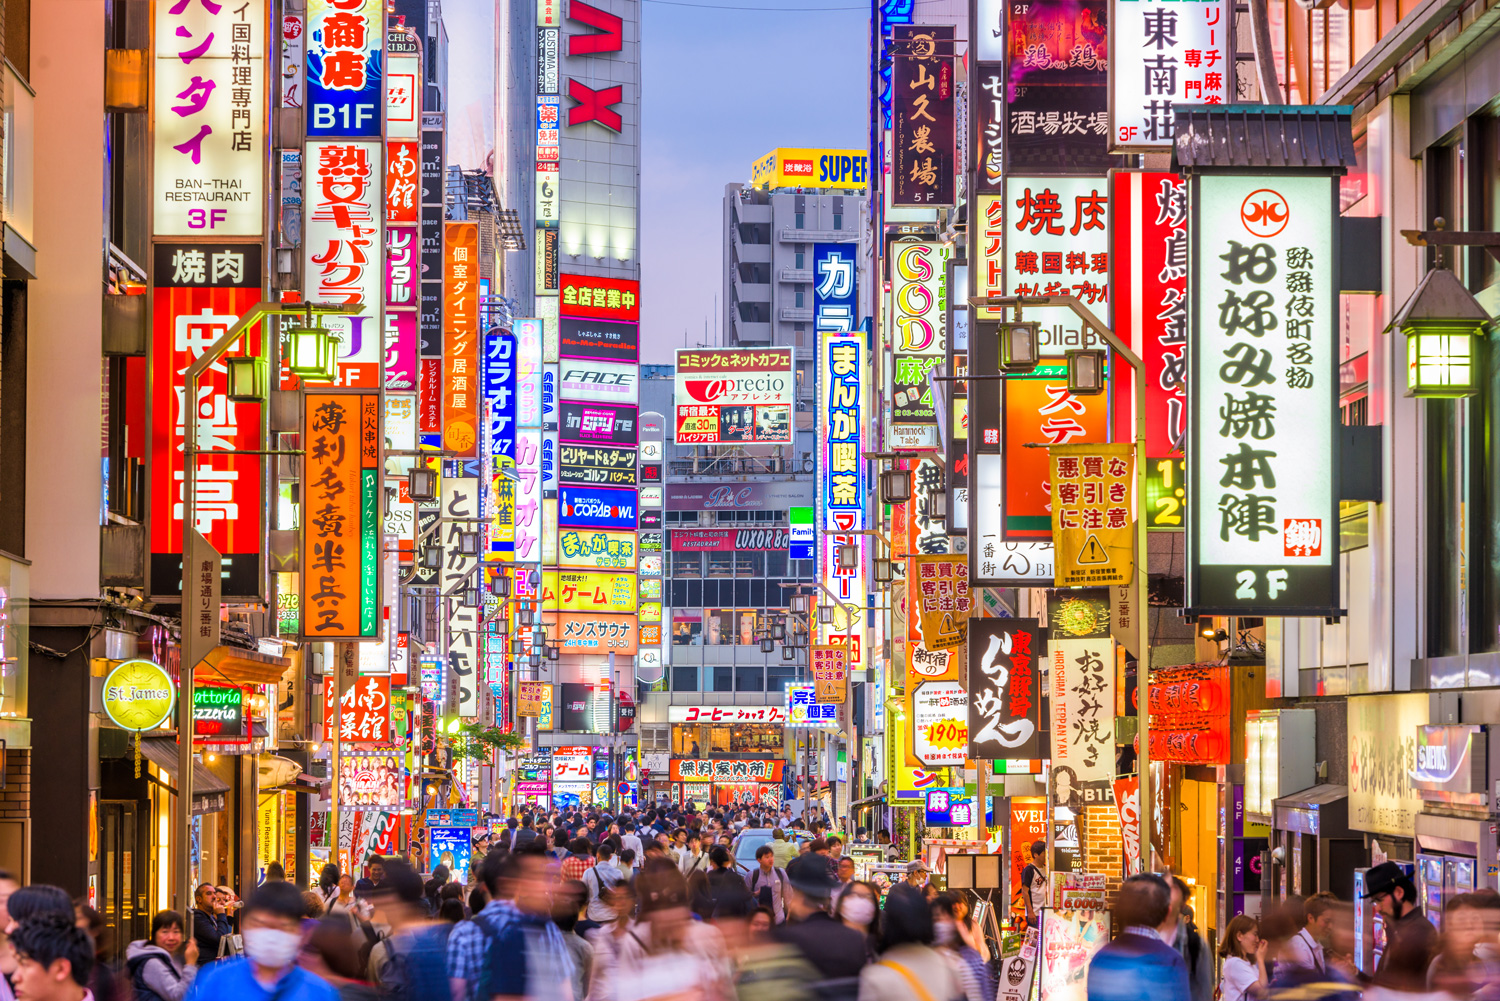 Crowds pass through Kabukicho in the Shinjuku district of Tokyo